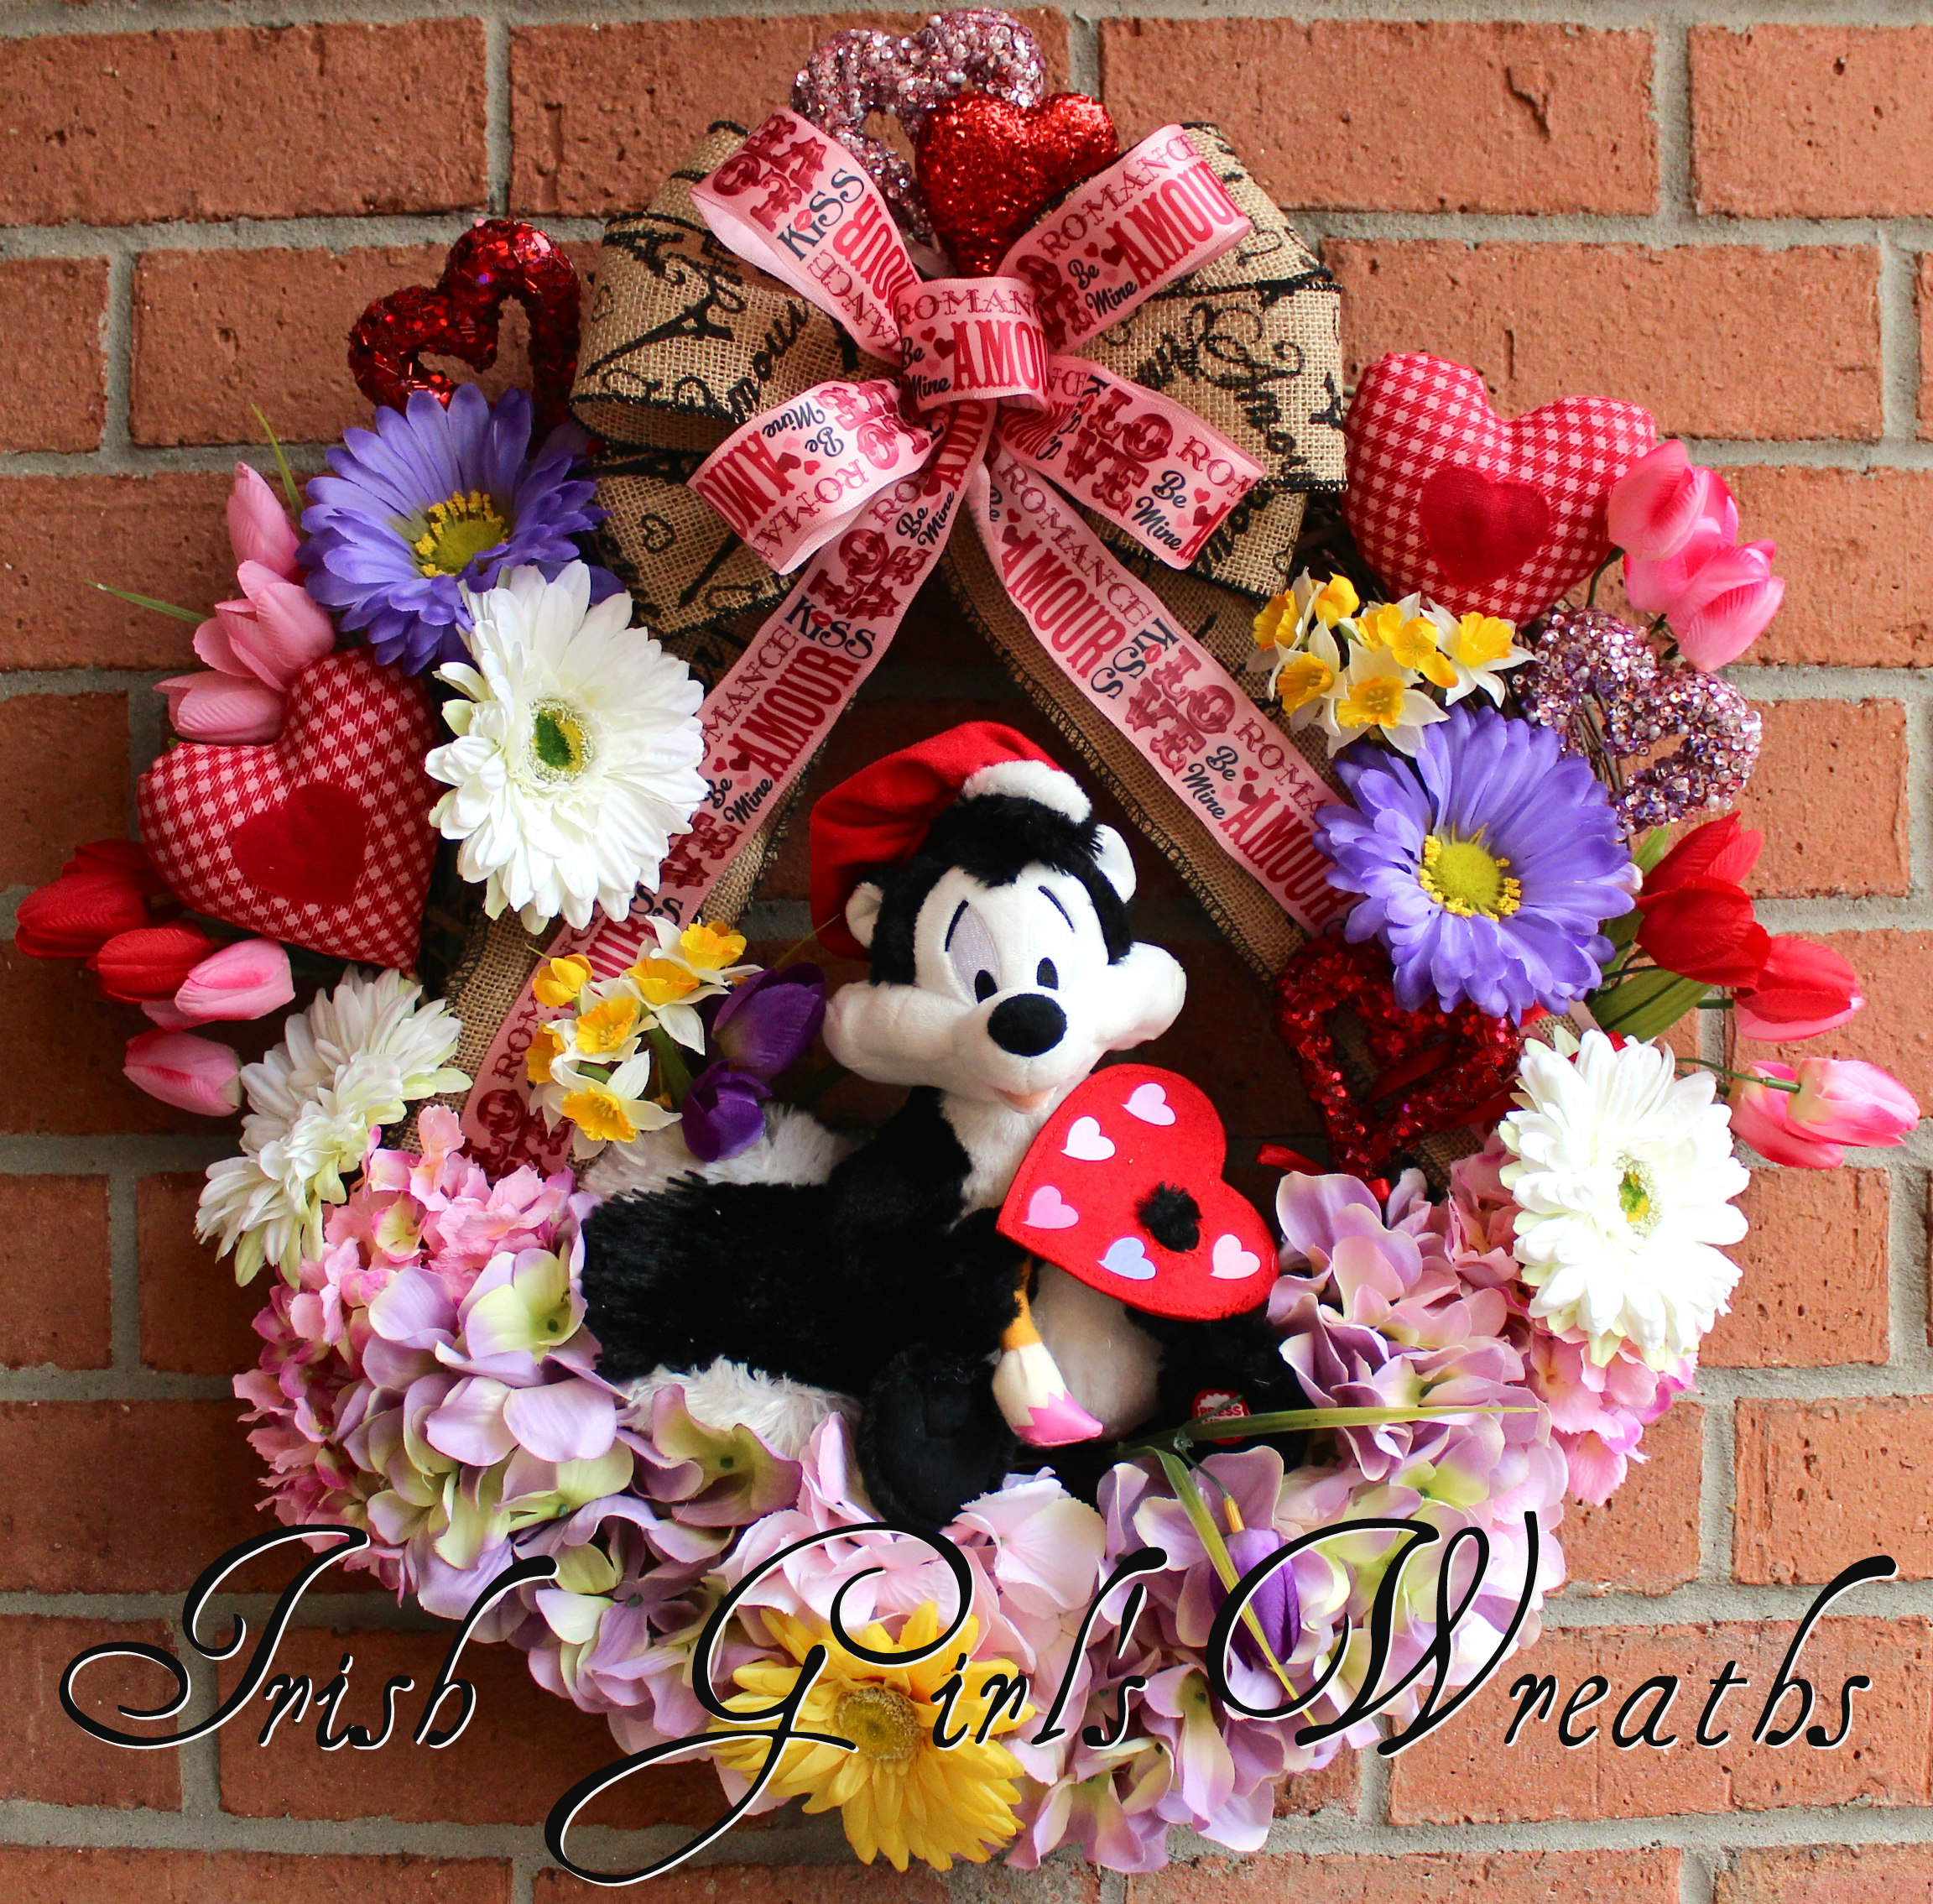 Talking Pepe Le Pew Artiste of Love Valentines Wreath